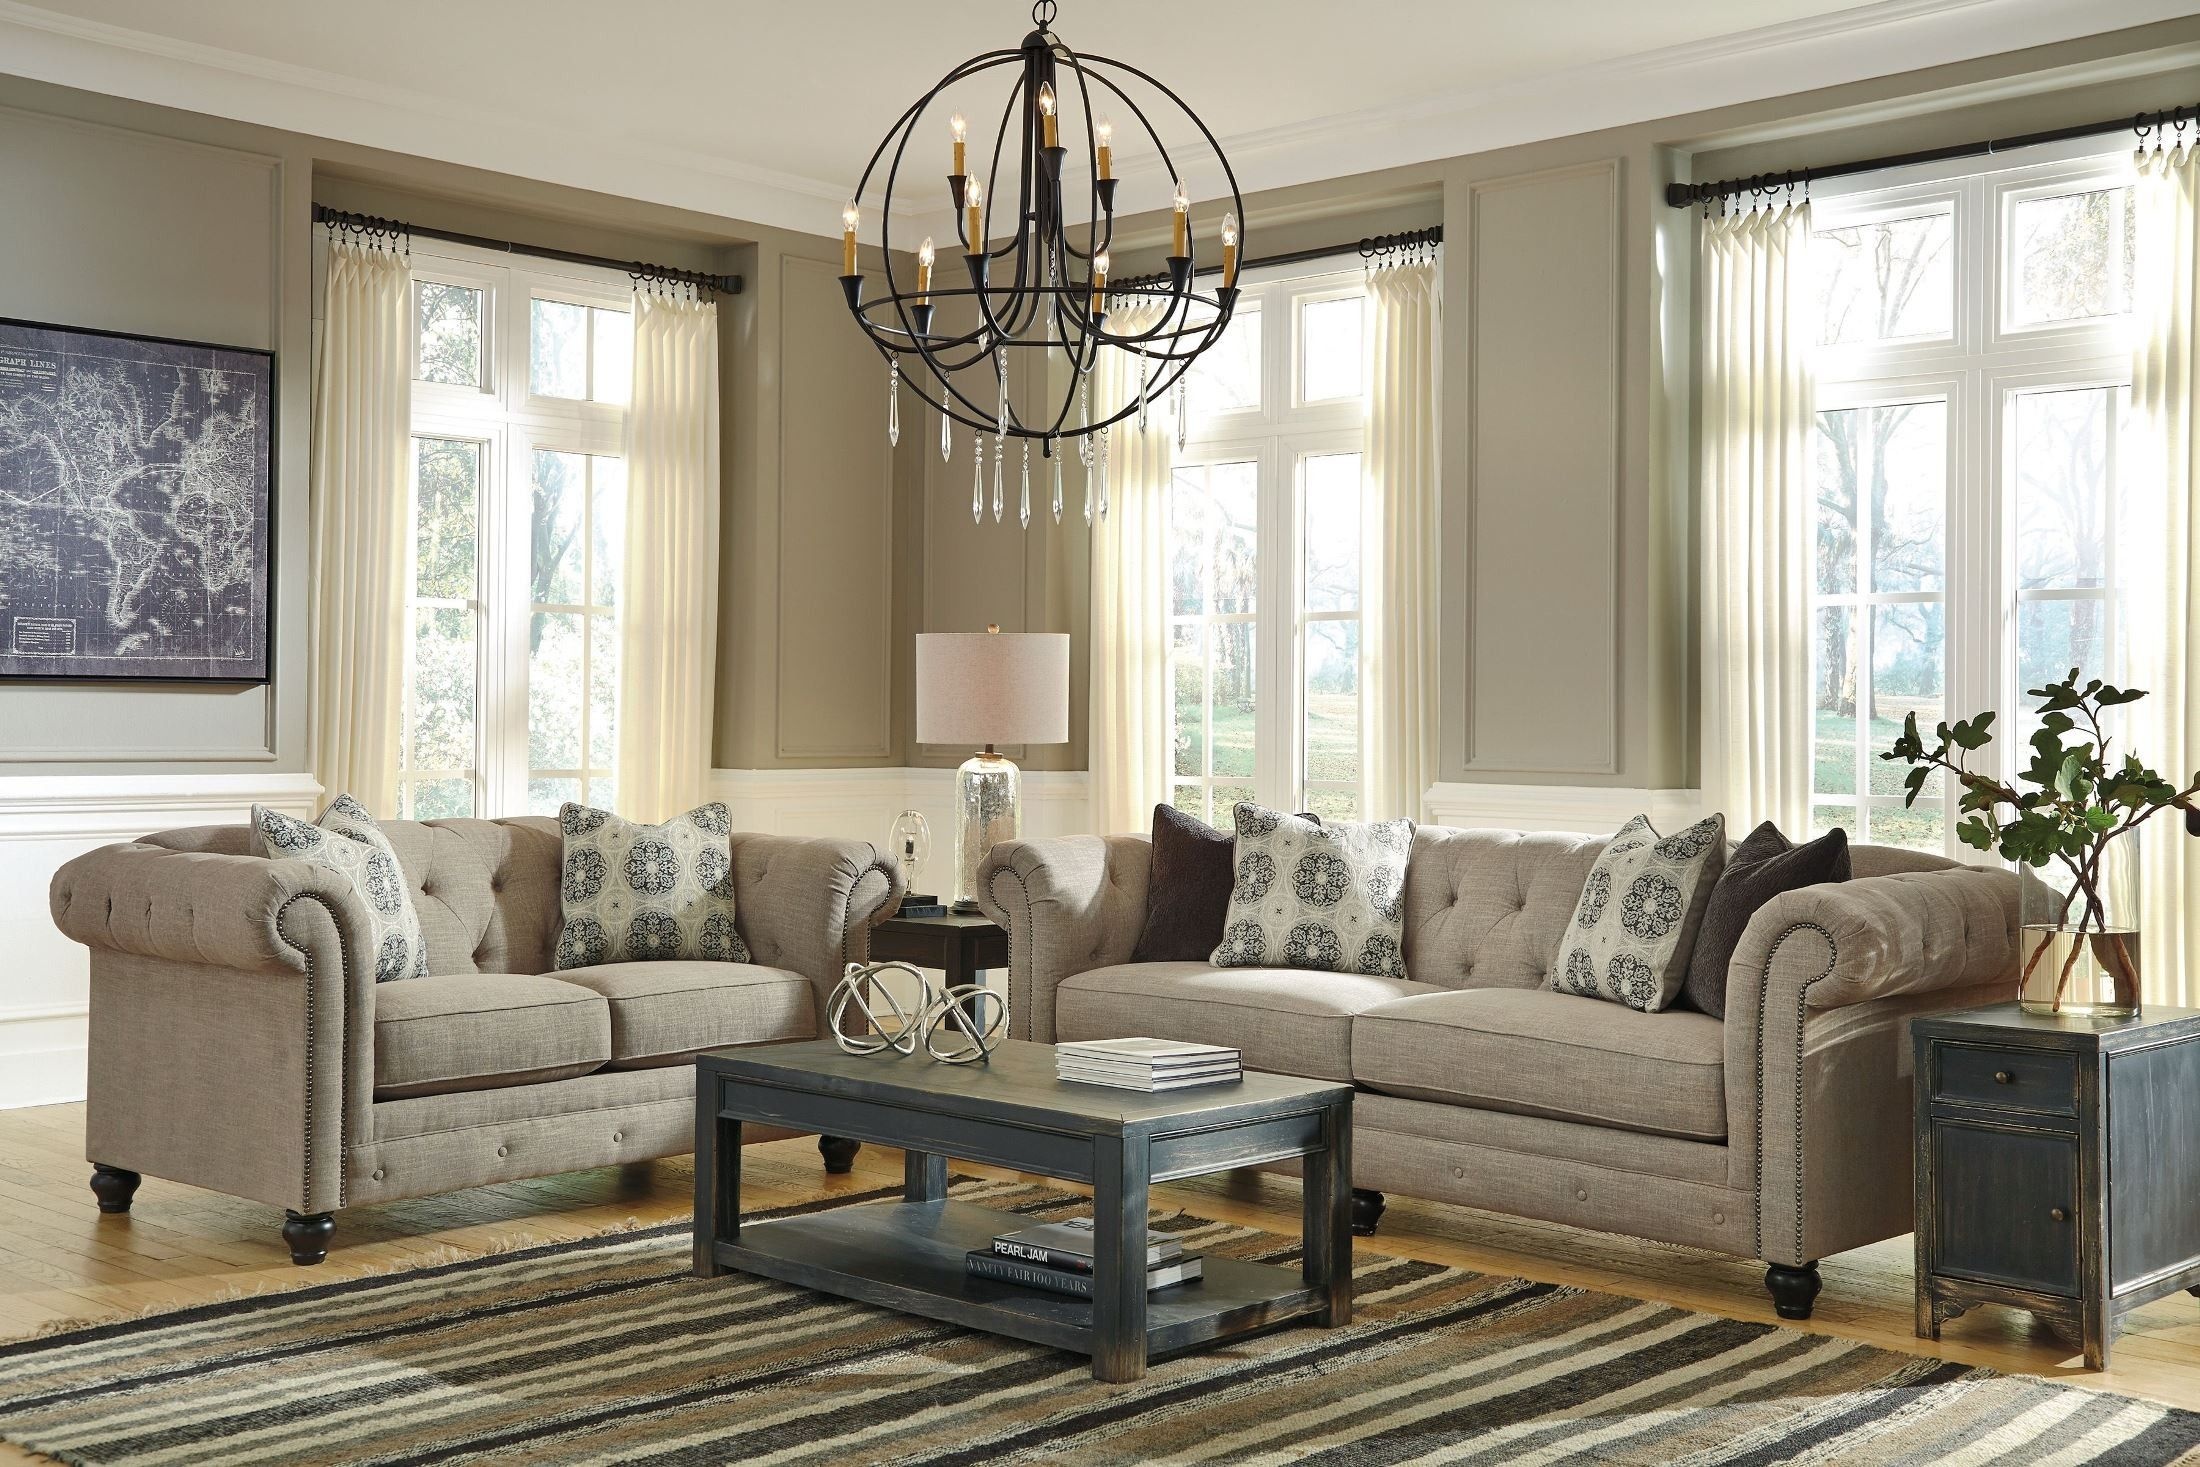 Living Room Ideas Azlyn Loveseat By Ashley Furniture At Kensington Furniture This Entire Setup Is Sofa And Loveseat Set Living Room Sofa Loveseat Living Room